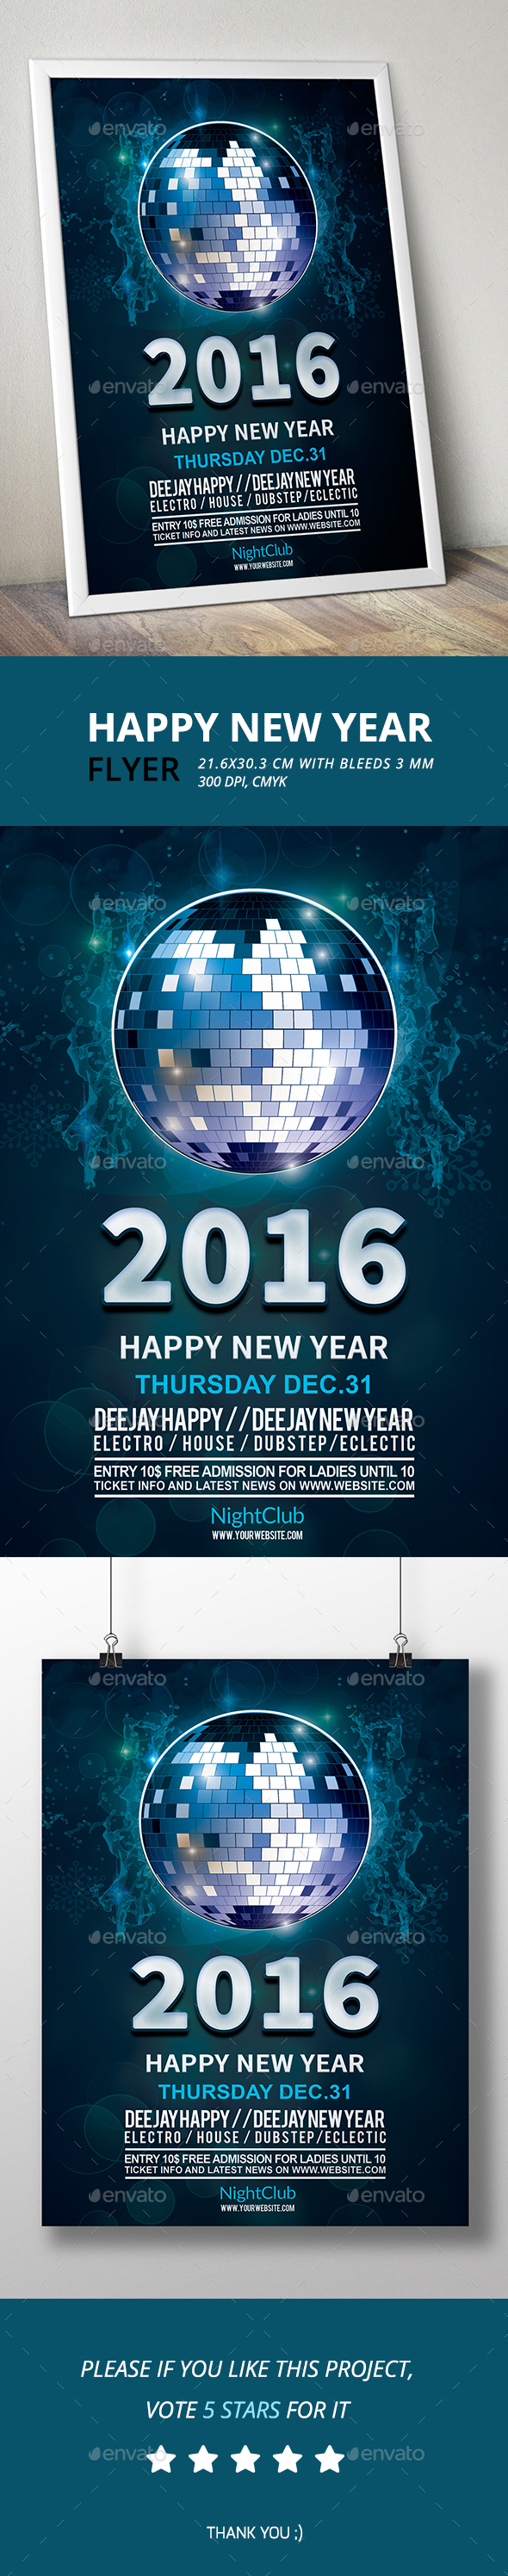 Happy New Year Flyer 2016 - Clubs & Parties Events